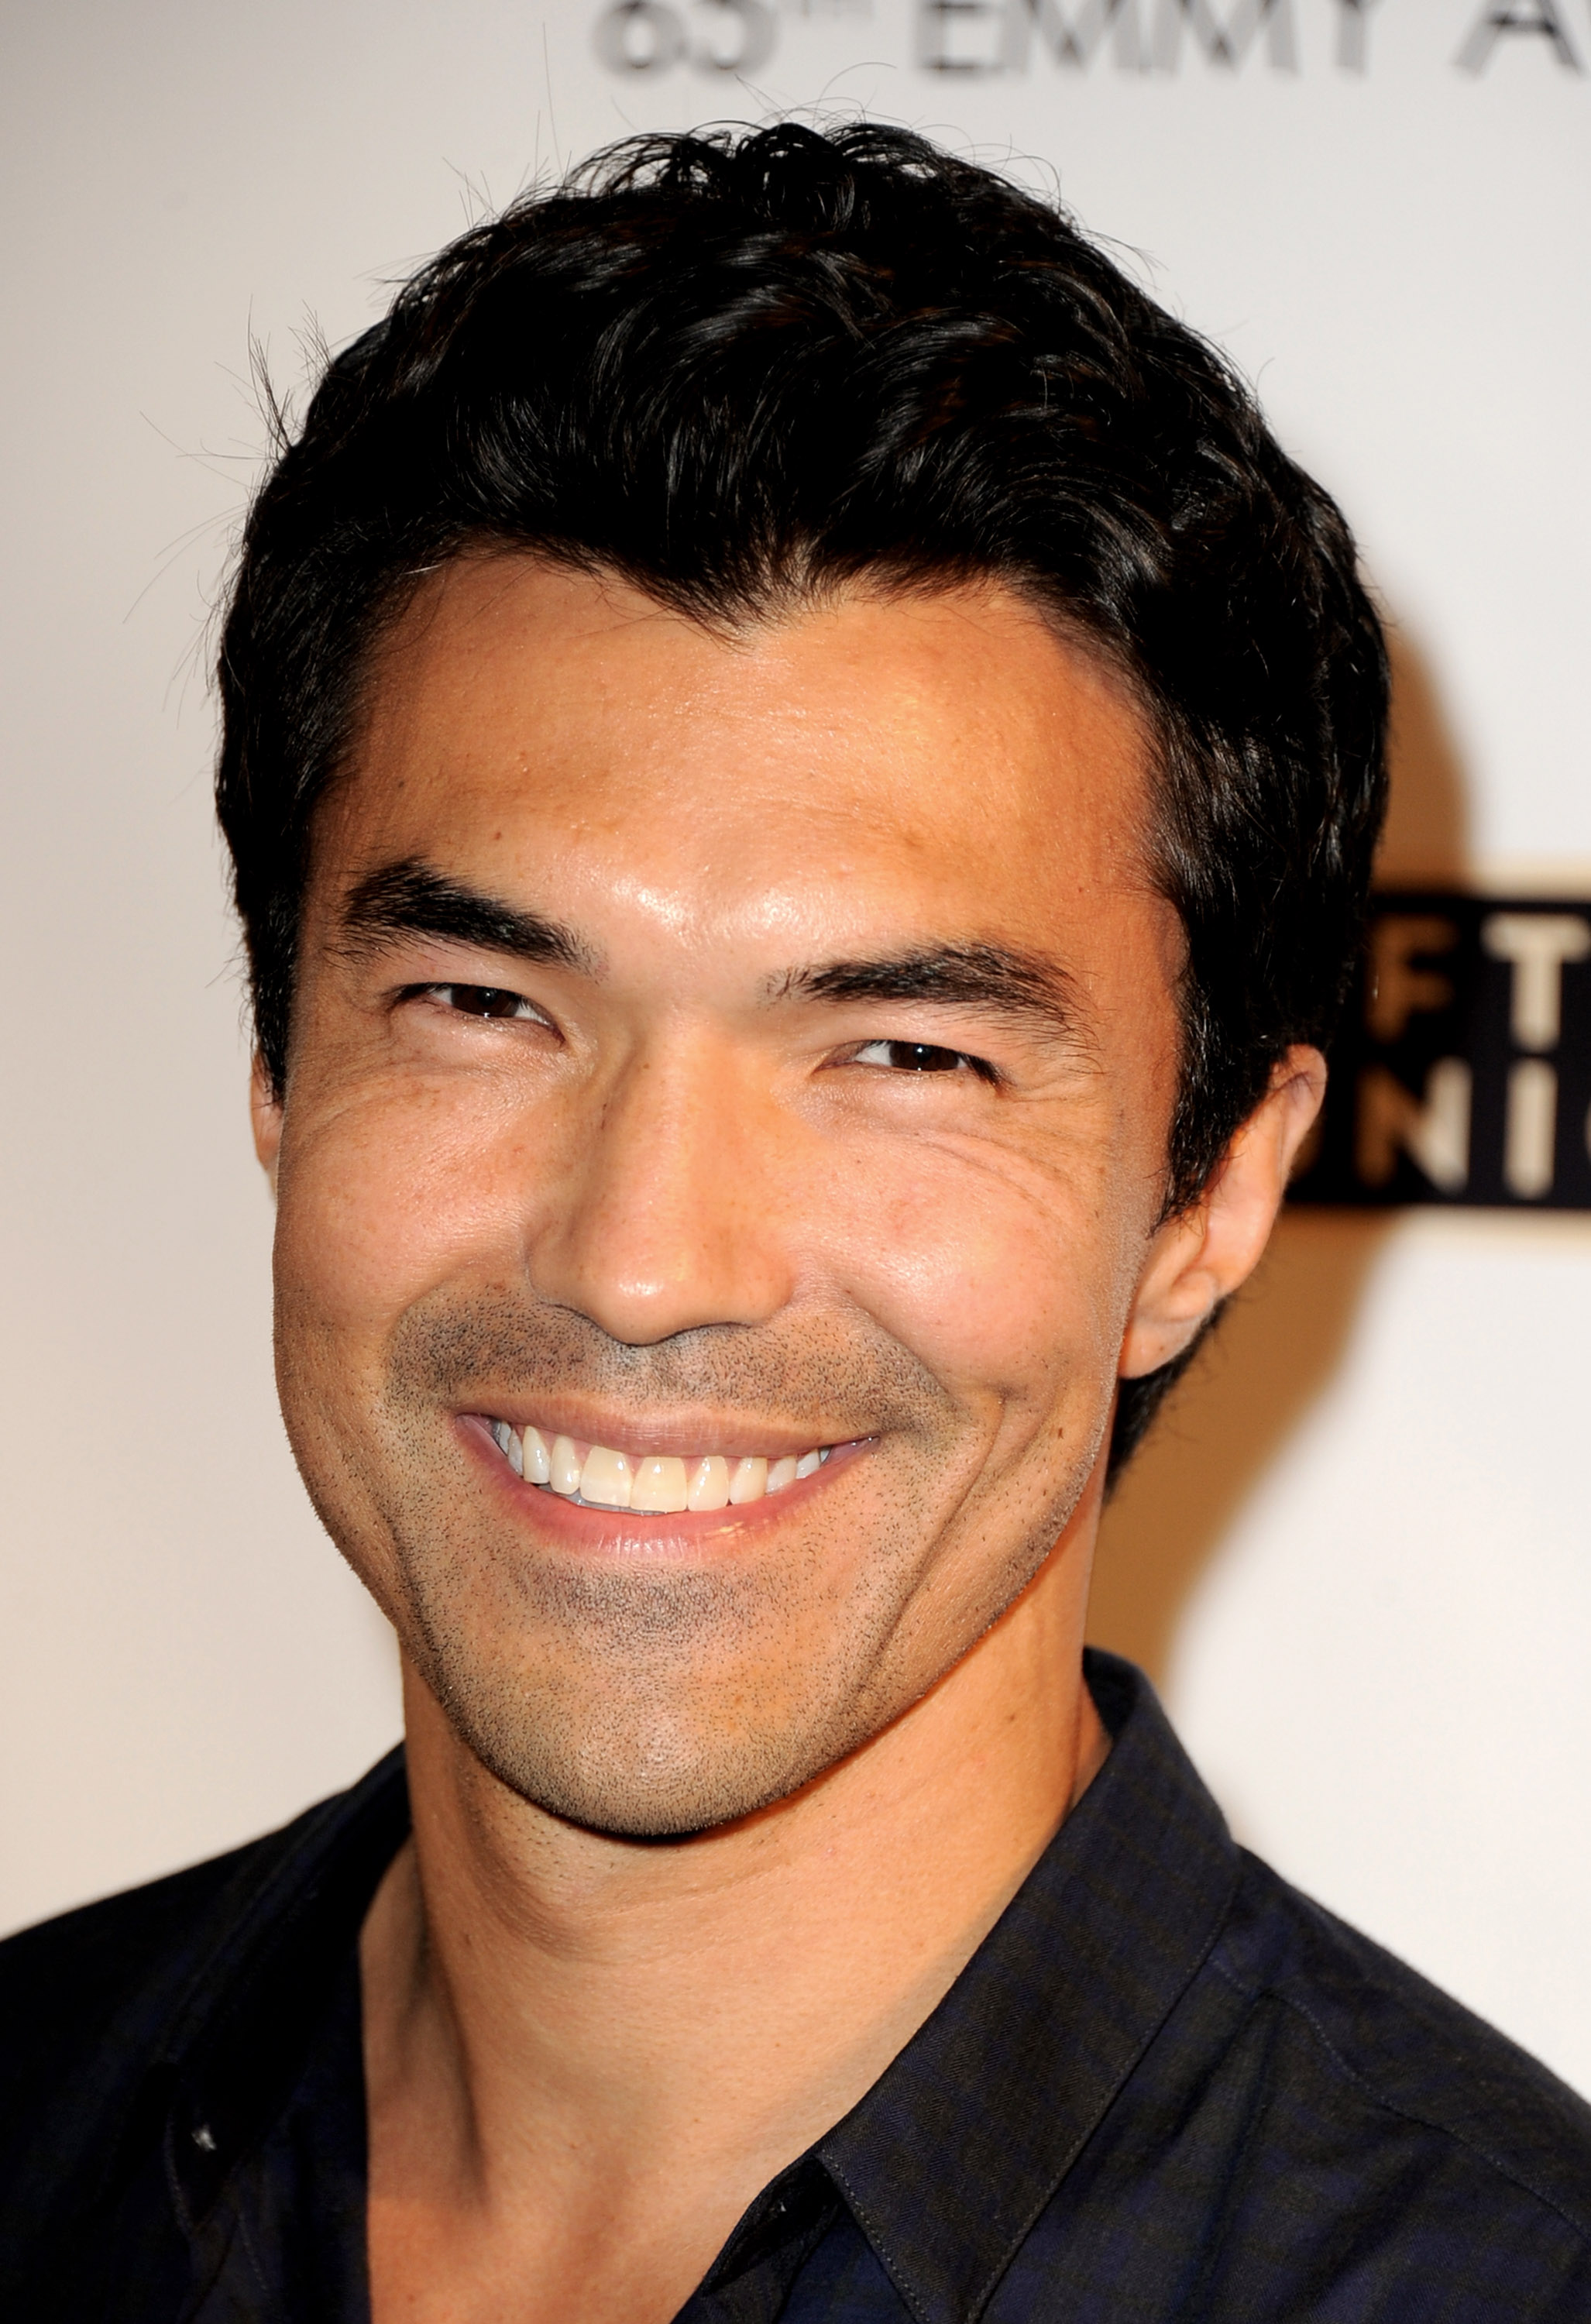 ian anthony dale wikiian anthony dale instagram, ian anthony dale wiki, ian anthony dale height, ian anthony dale kiss, ian anthony dale, ian anthony dale wife, ian anthony dale imdb, ian anthony dale facebook, ian anthony dale tumblr, ian anthony dale interview, ian anthony dale married, ian anthony dale parents, ian anthony dale bio, ian anthony dale family, ian anthony dale net worth, ian anthony dale gay, ian anthony dale twitter, ian anthony dale shirtless, ian anthony dale and his wife, ian anthony dale criminal minds